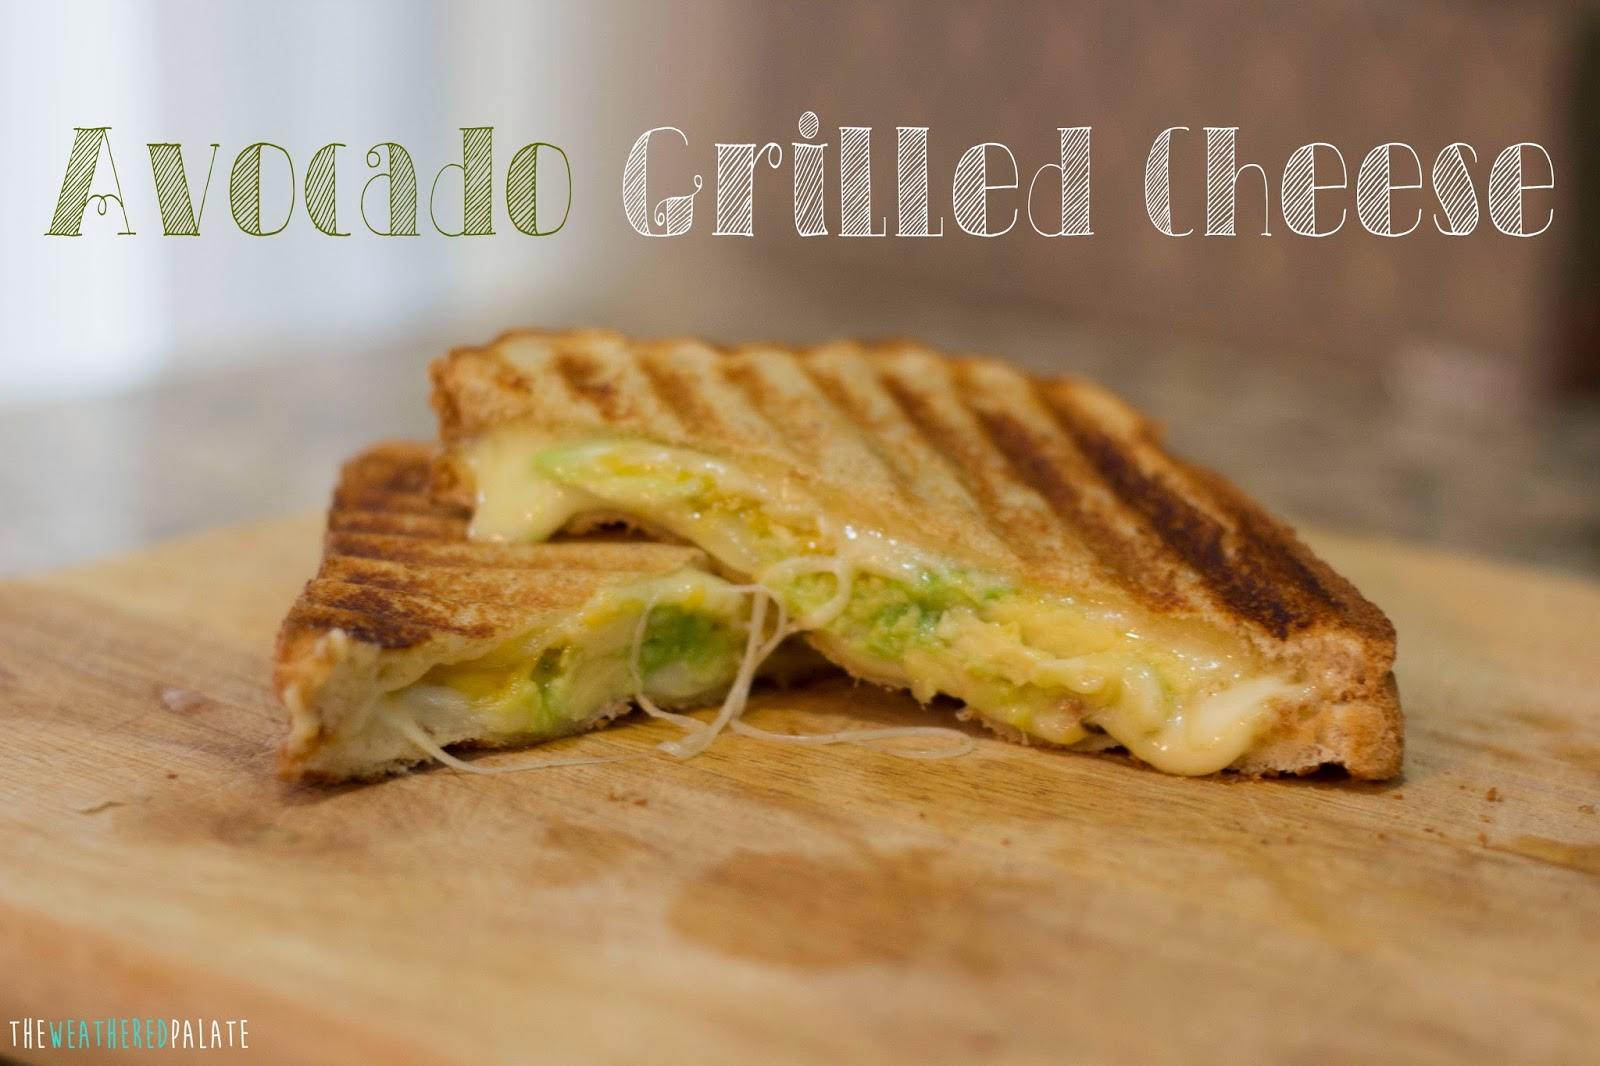 http://www.theweatheredpalate.com/2014/09/avocado-grilled-cheese.html